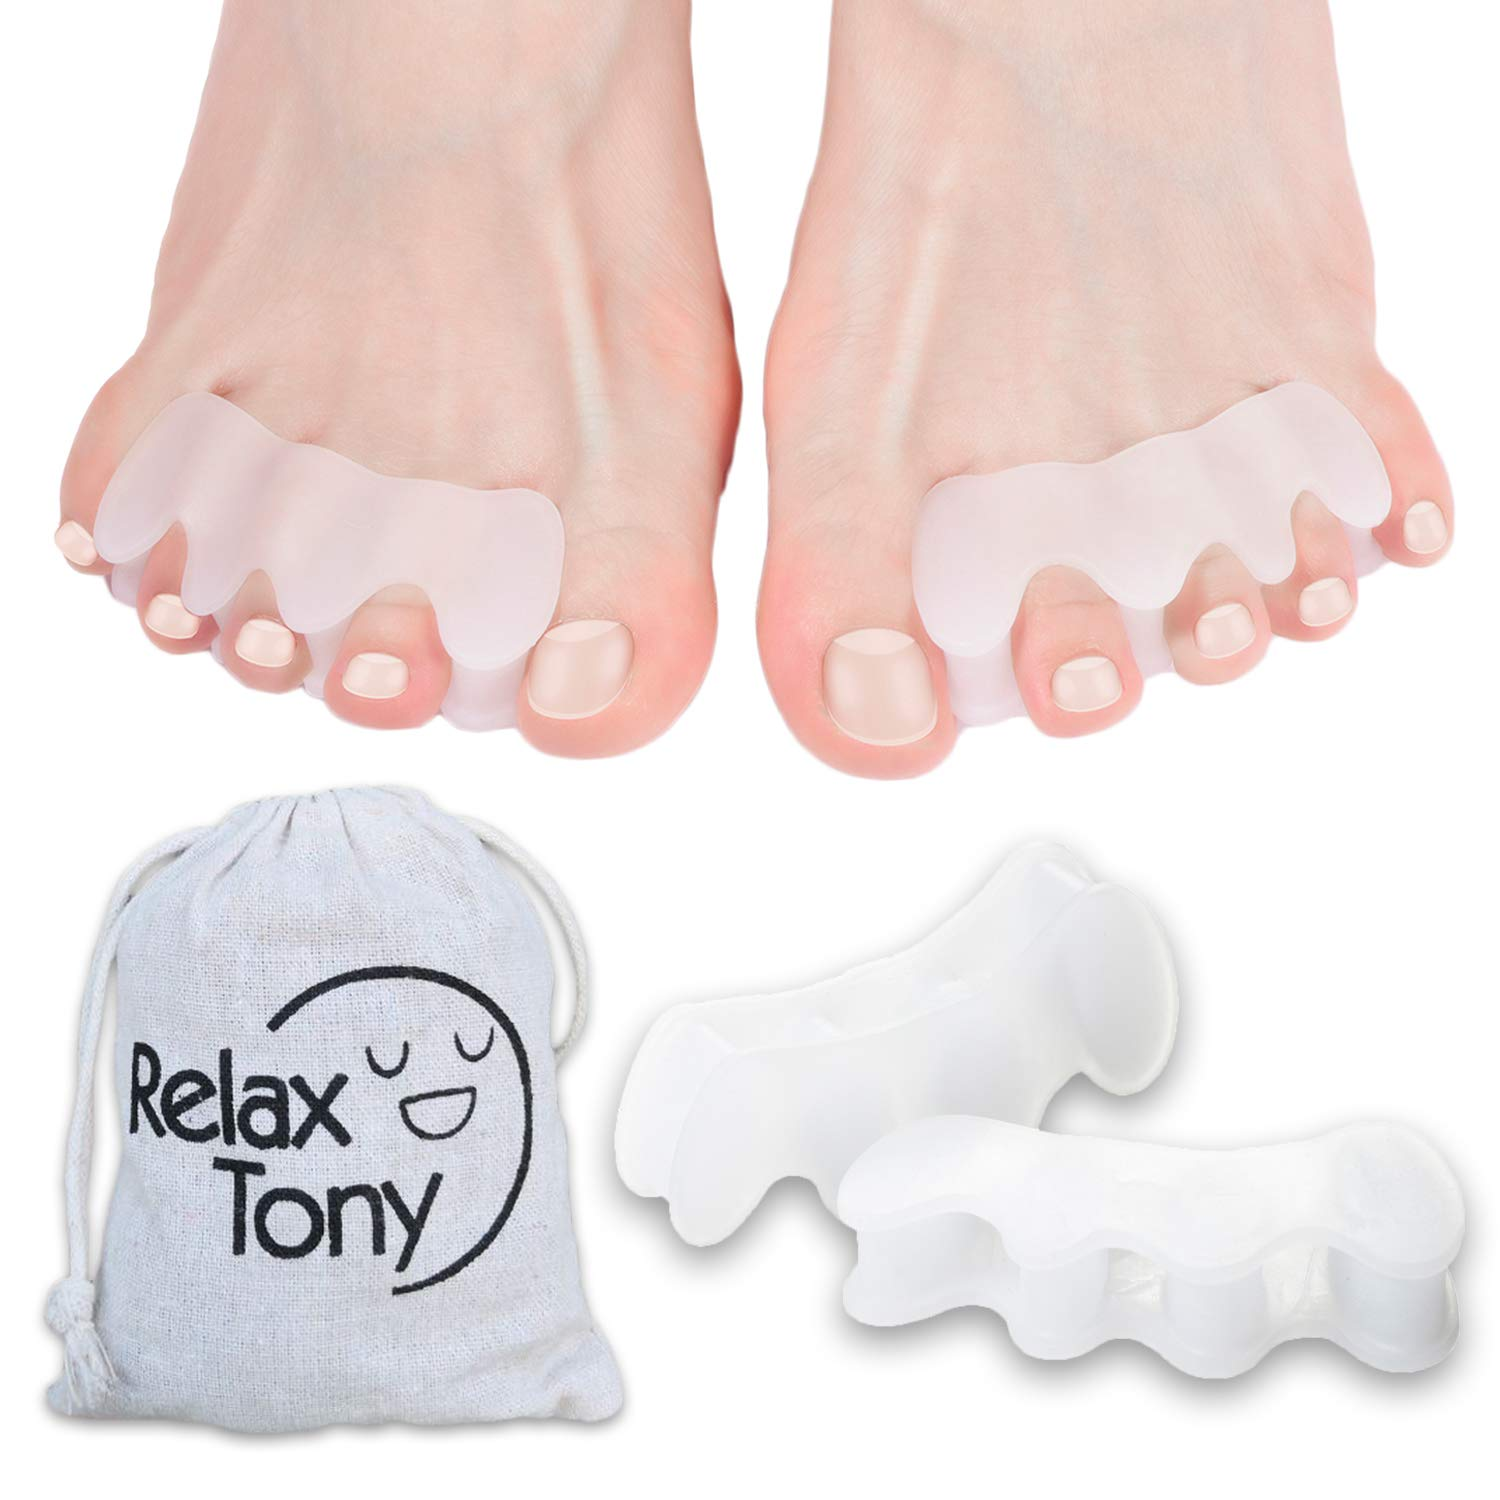 Anatomical Toe Separators, Straighteners & Spacers For Fitness and Wellness Use | Great for Pedicure, Bunion Corrector & Yoga